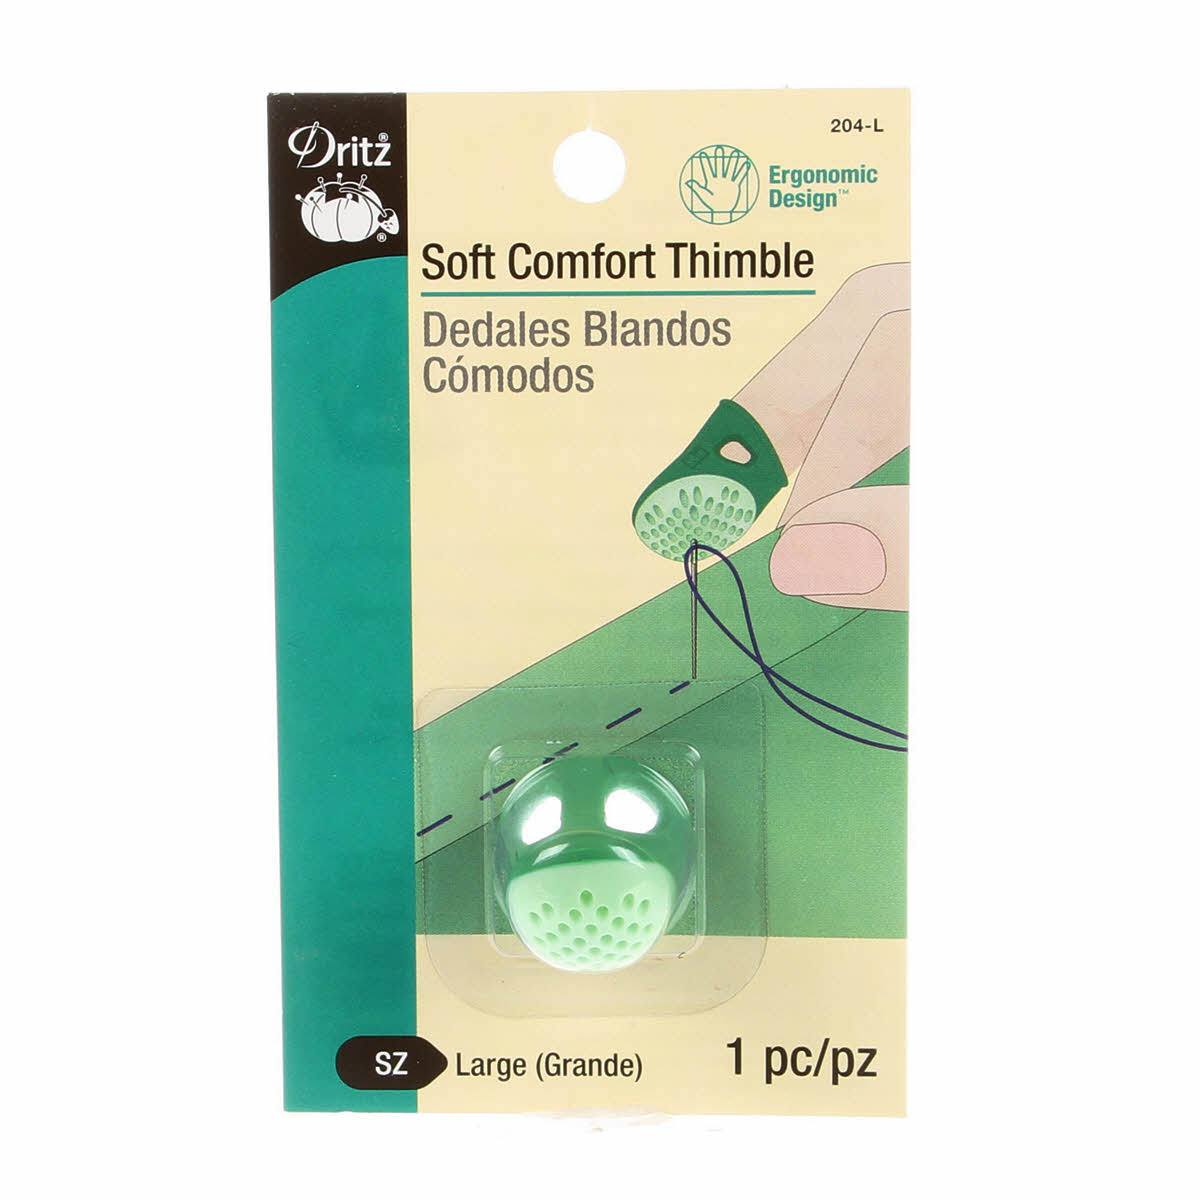 Soft Comfort Thimble Large